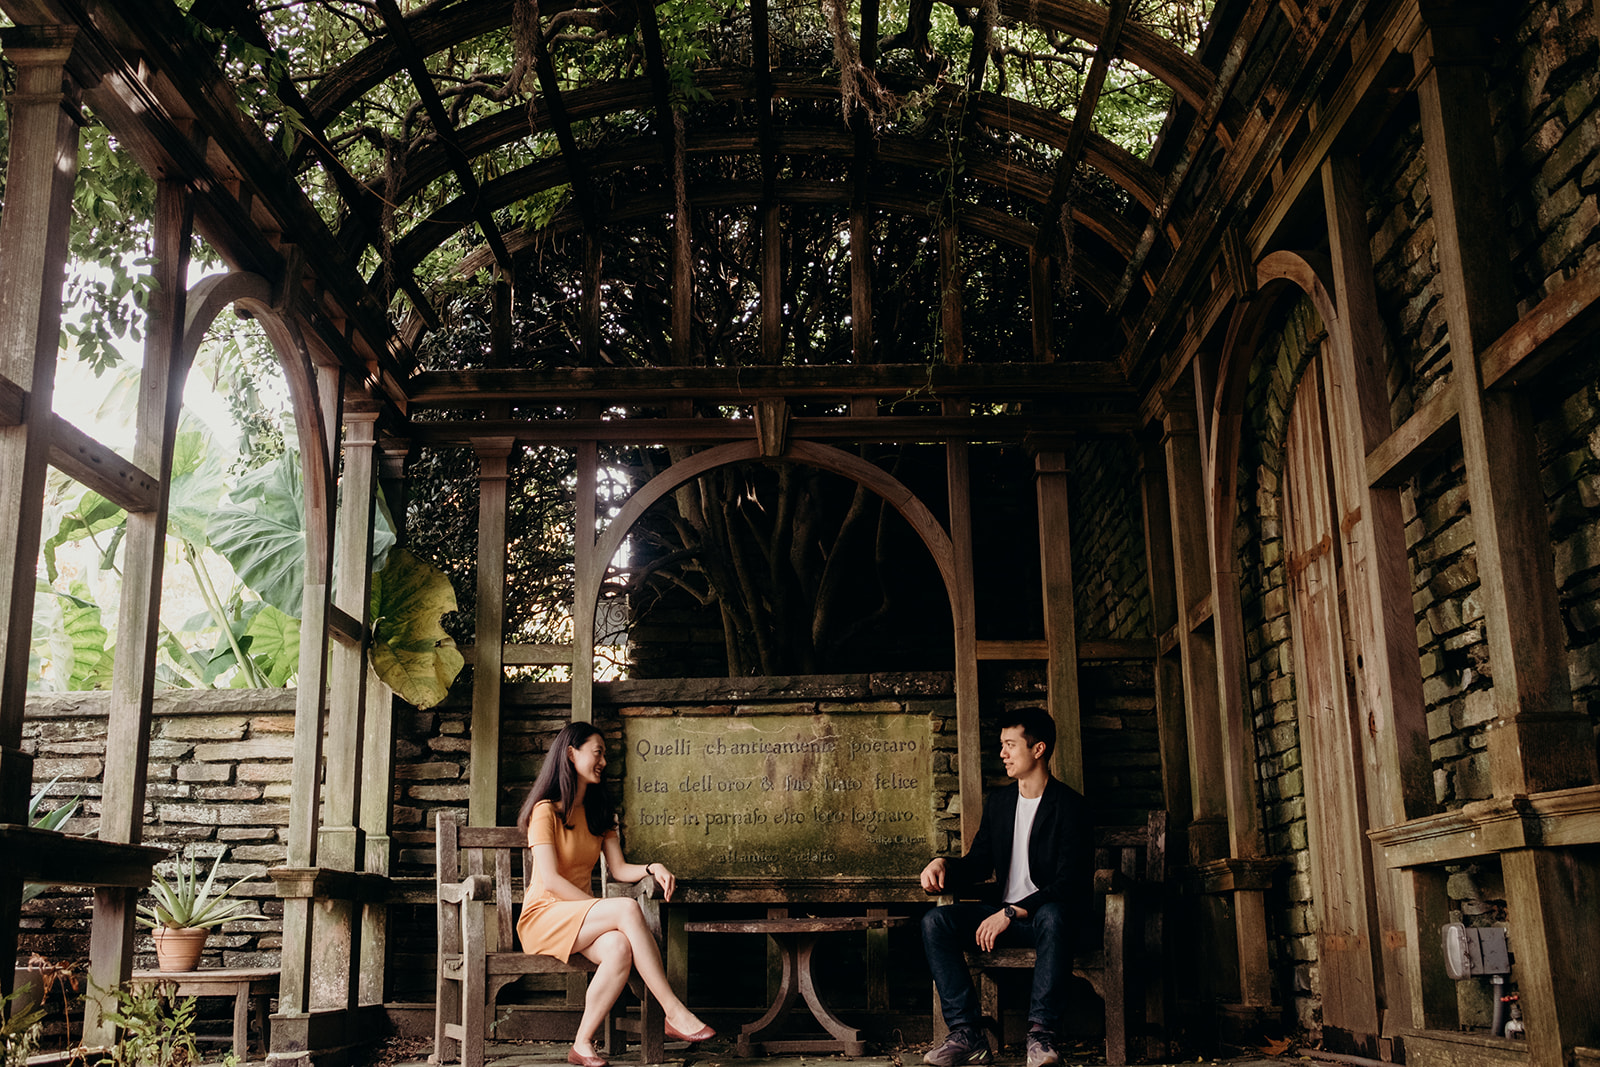 An engaged couple is seated under a trellis at Dumbarton Oaks.